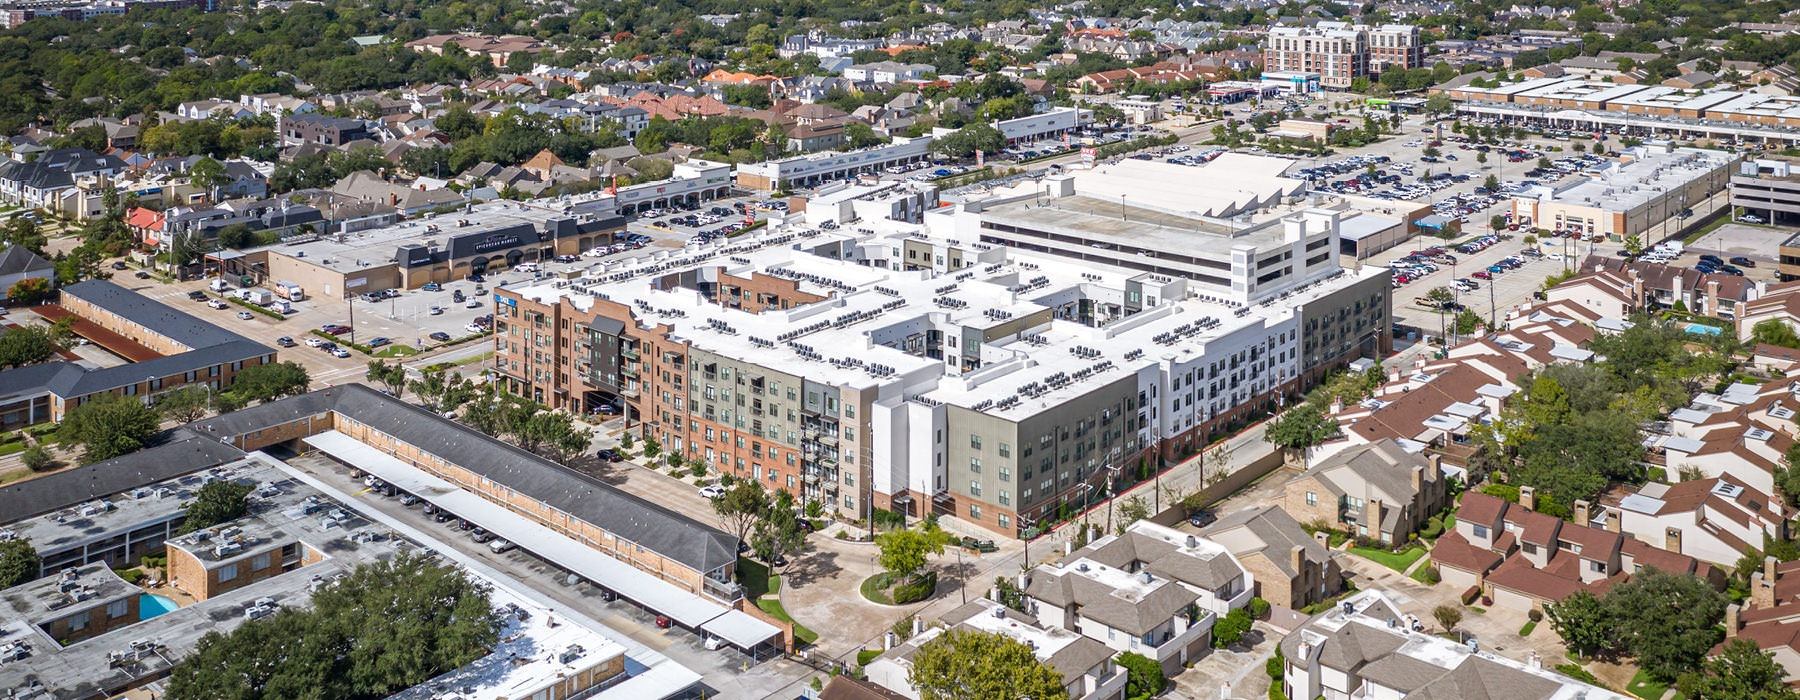 aerial view of Tate at Tanglewood and surrounding neighborhood